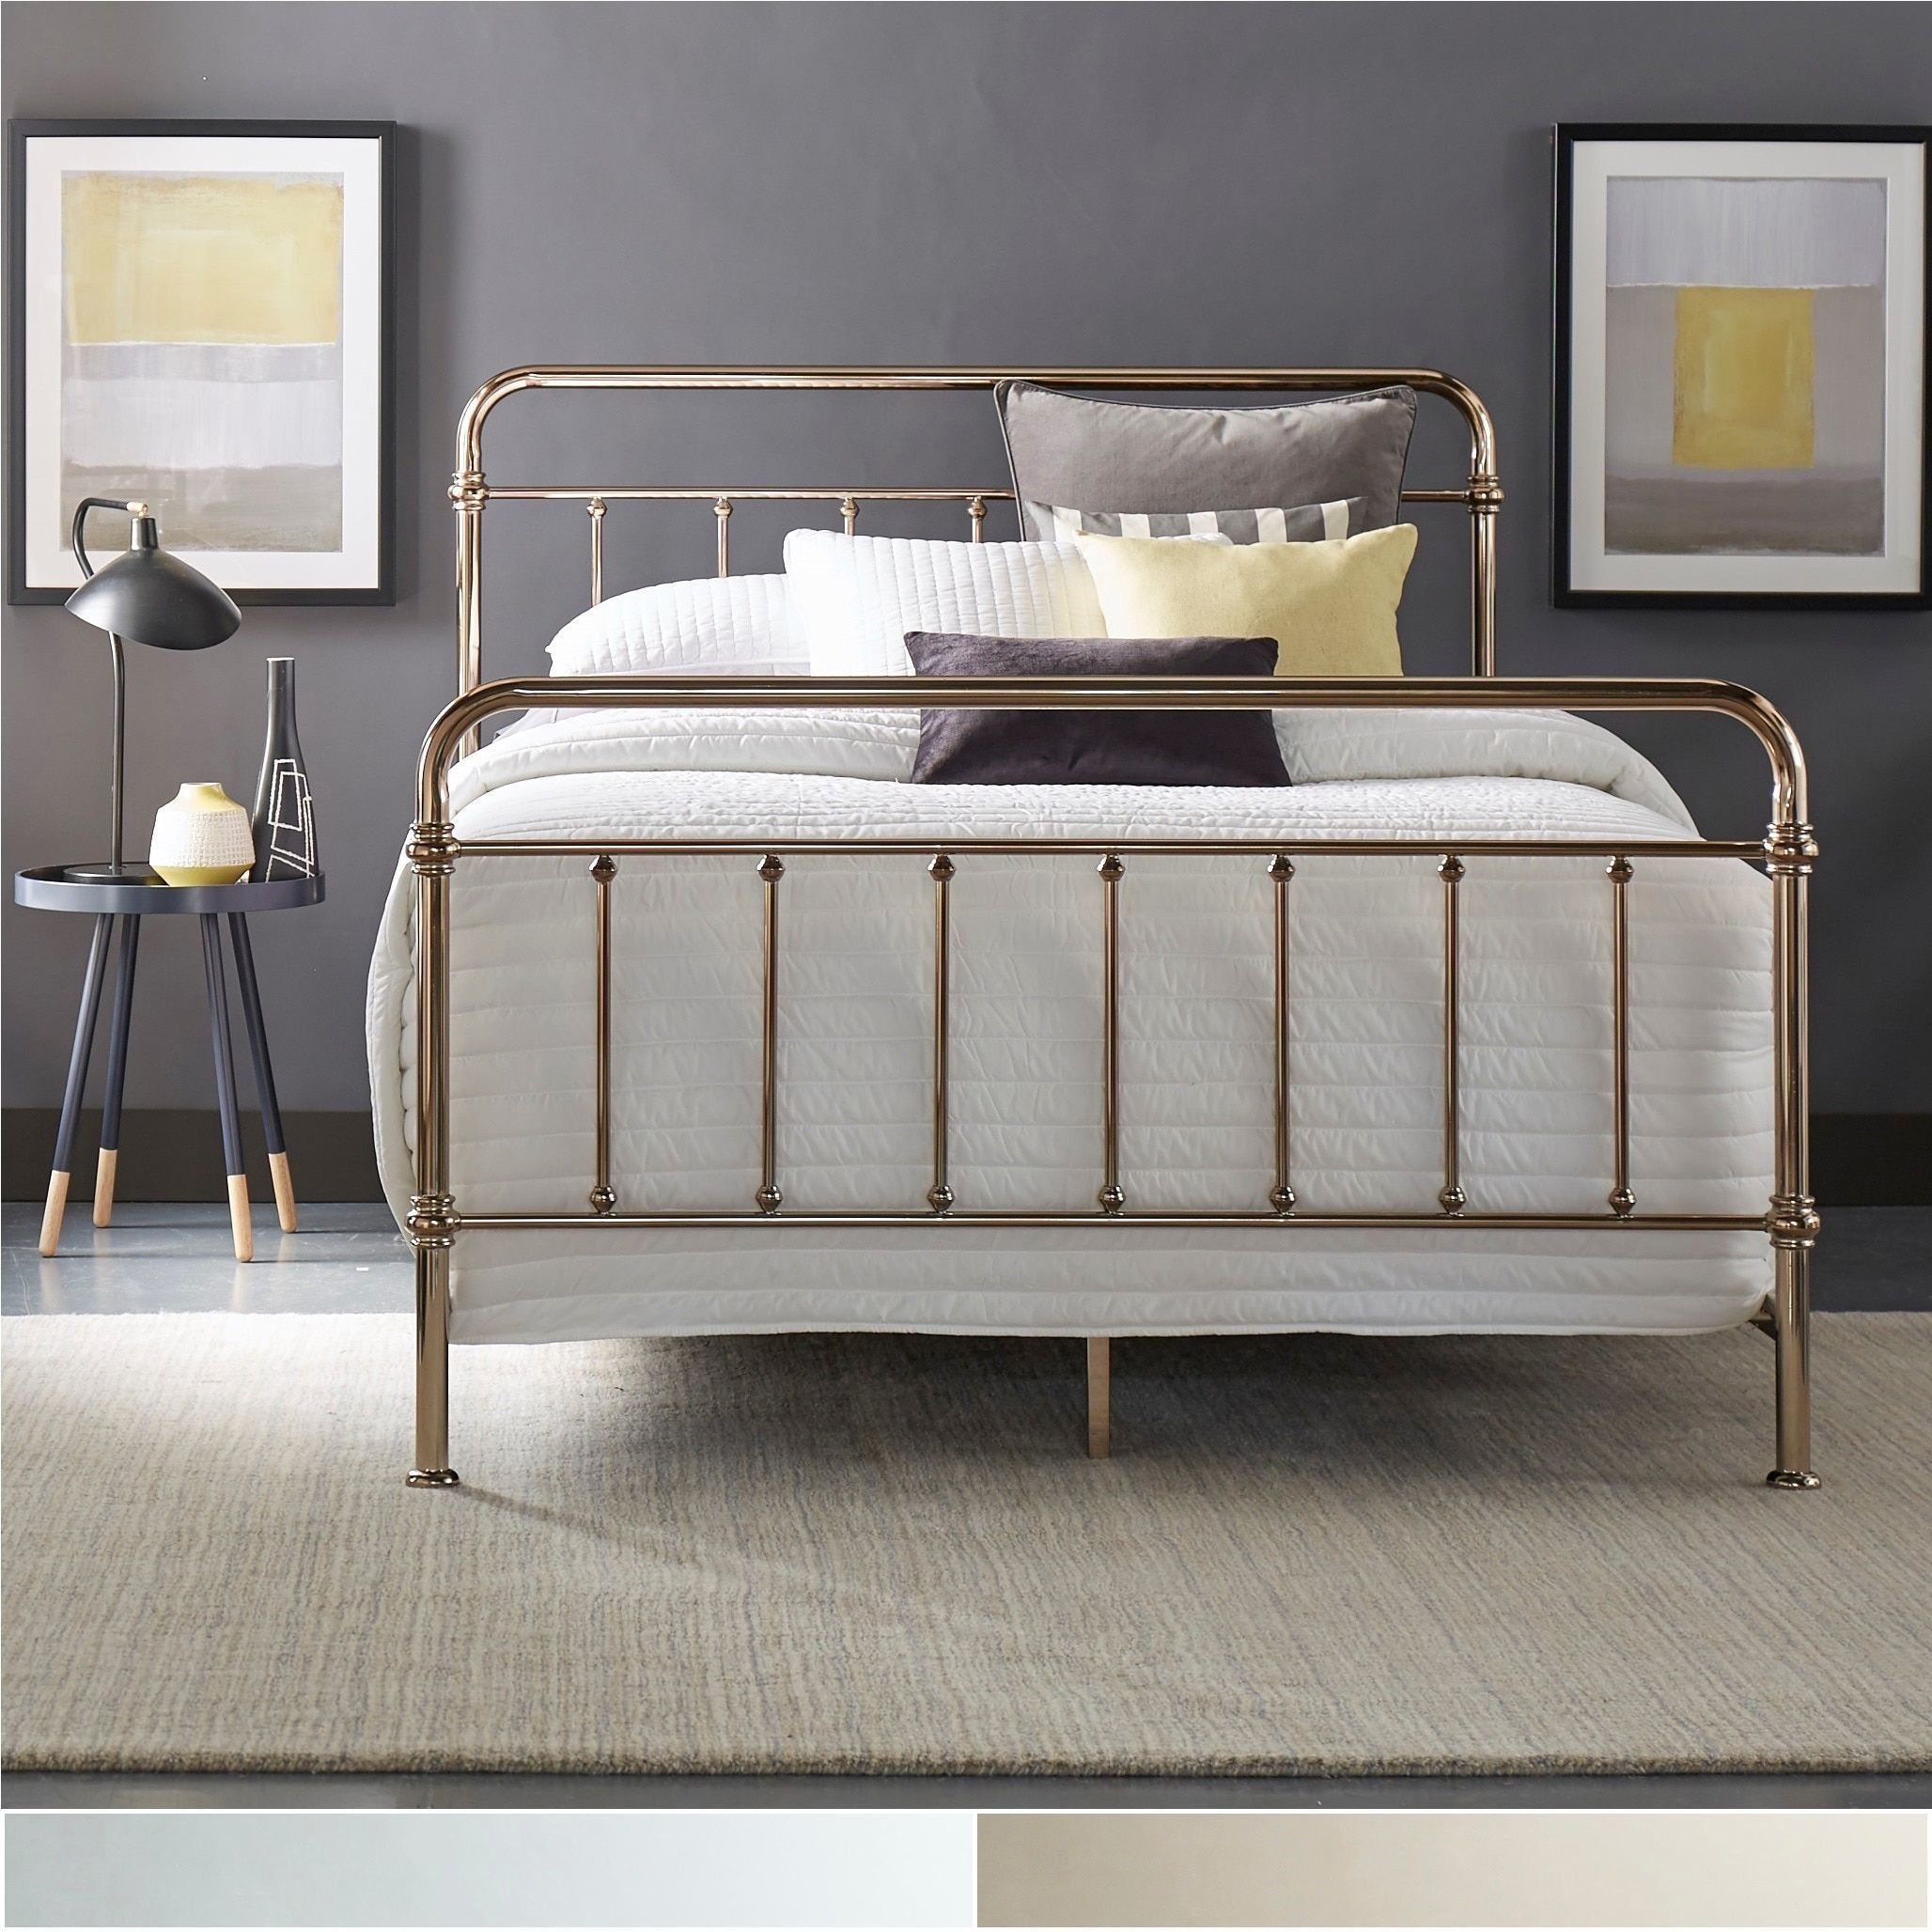 Giselle Graceful Lines Victorian Metallic King Sized Metal Bed By Inspire